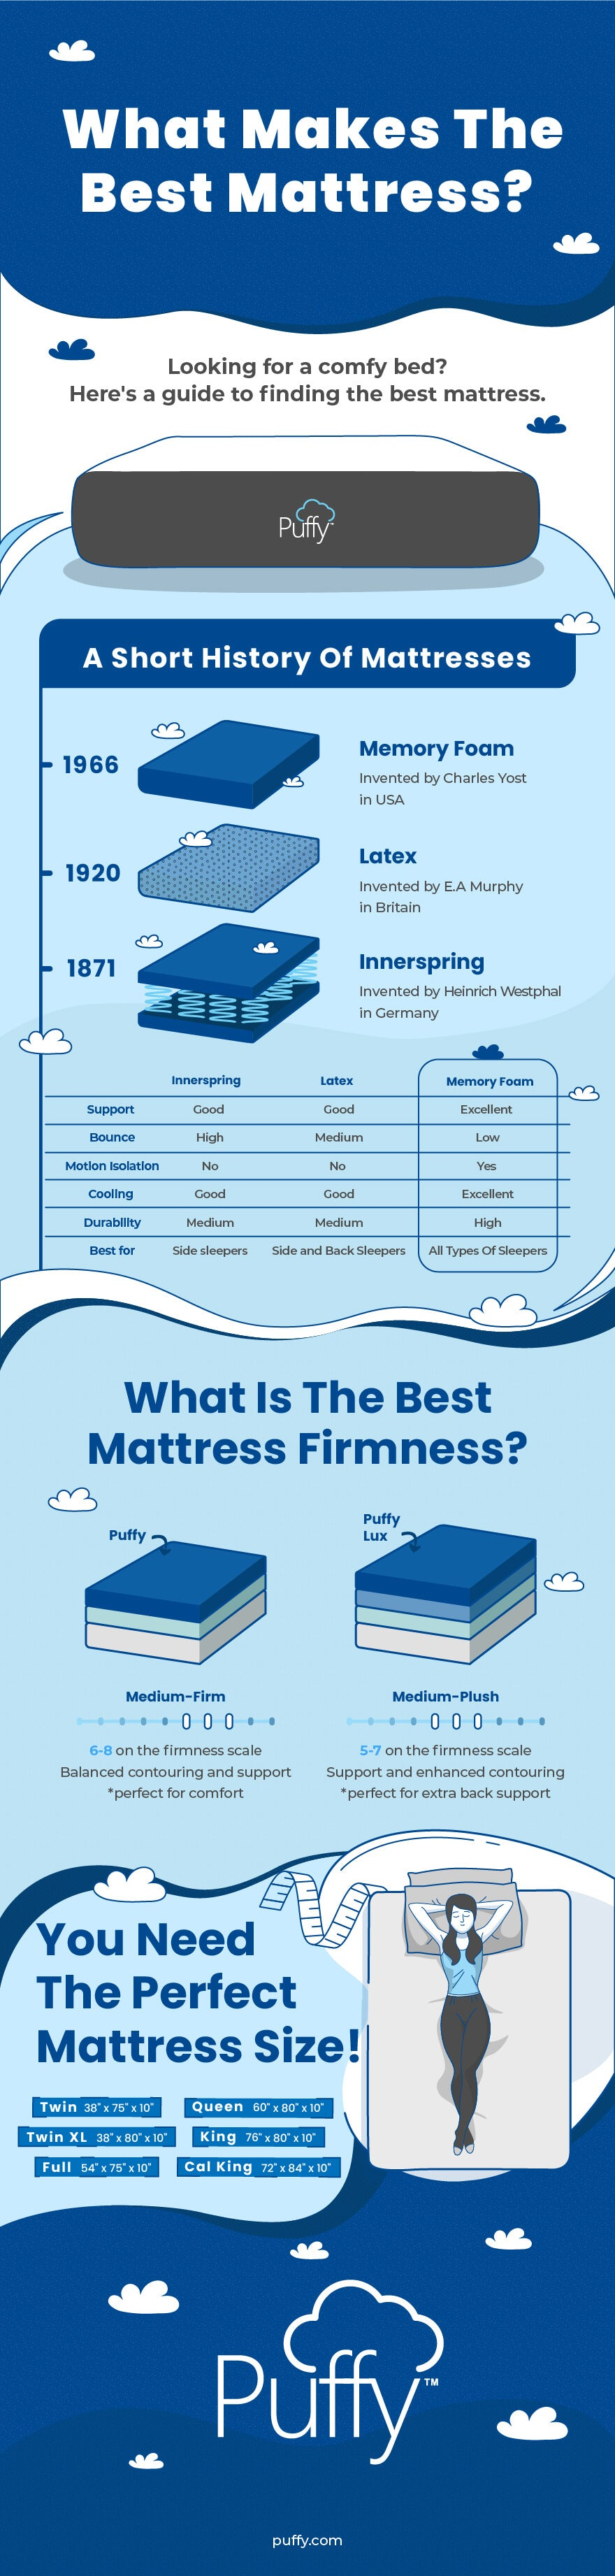 Discover What Makes The Best Mattress [Infographic]   Puffy